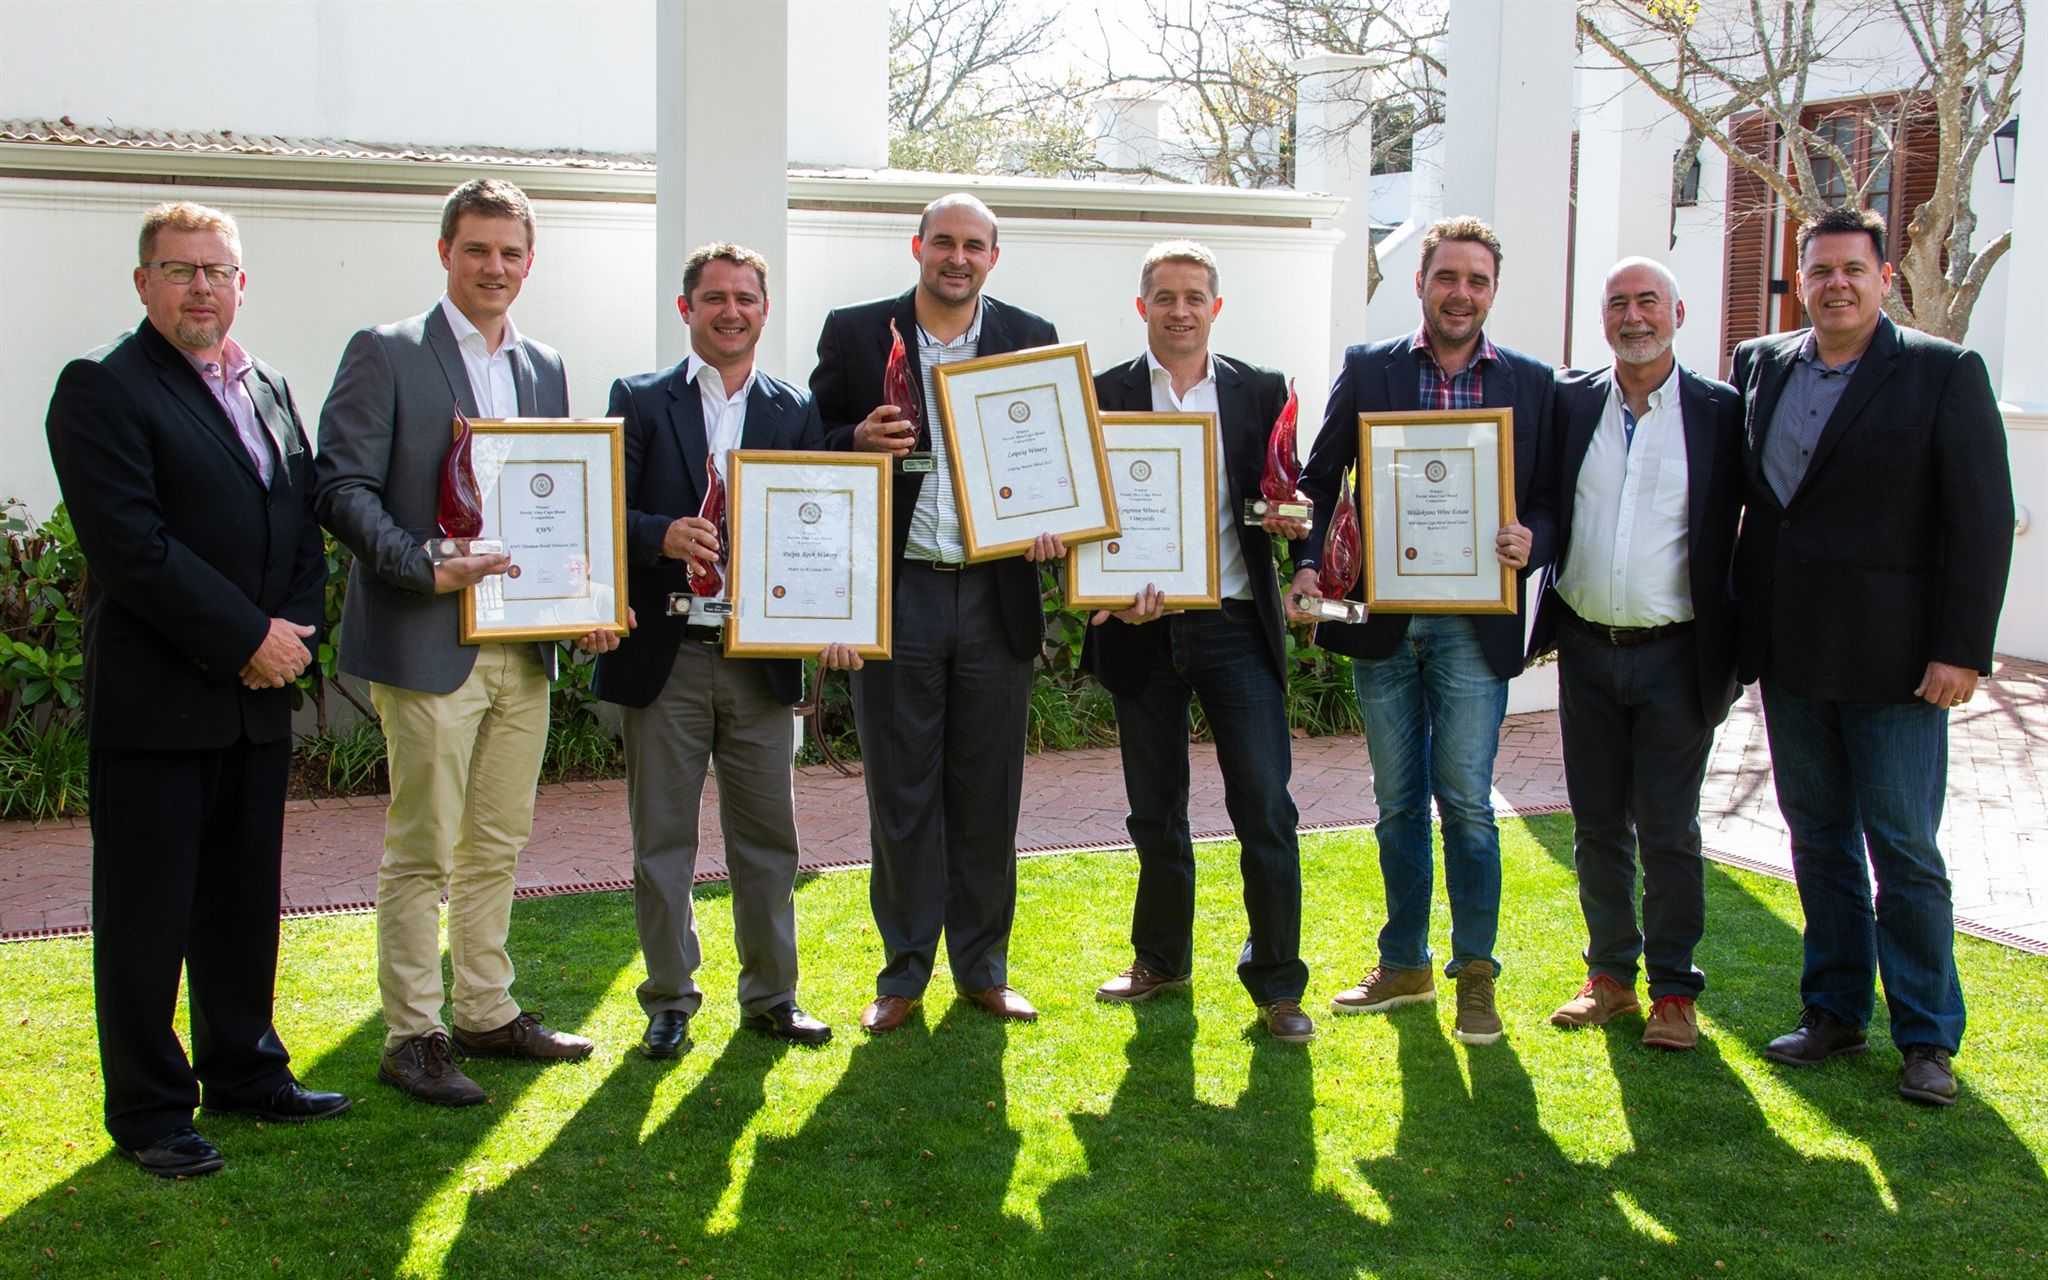 Winners Announced For 2018 Perold /absa Cape Blend photo